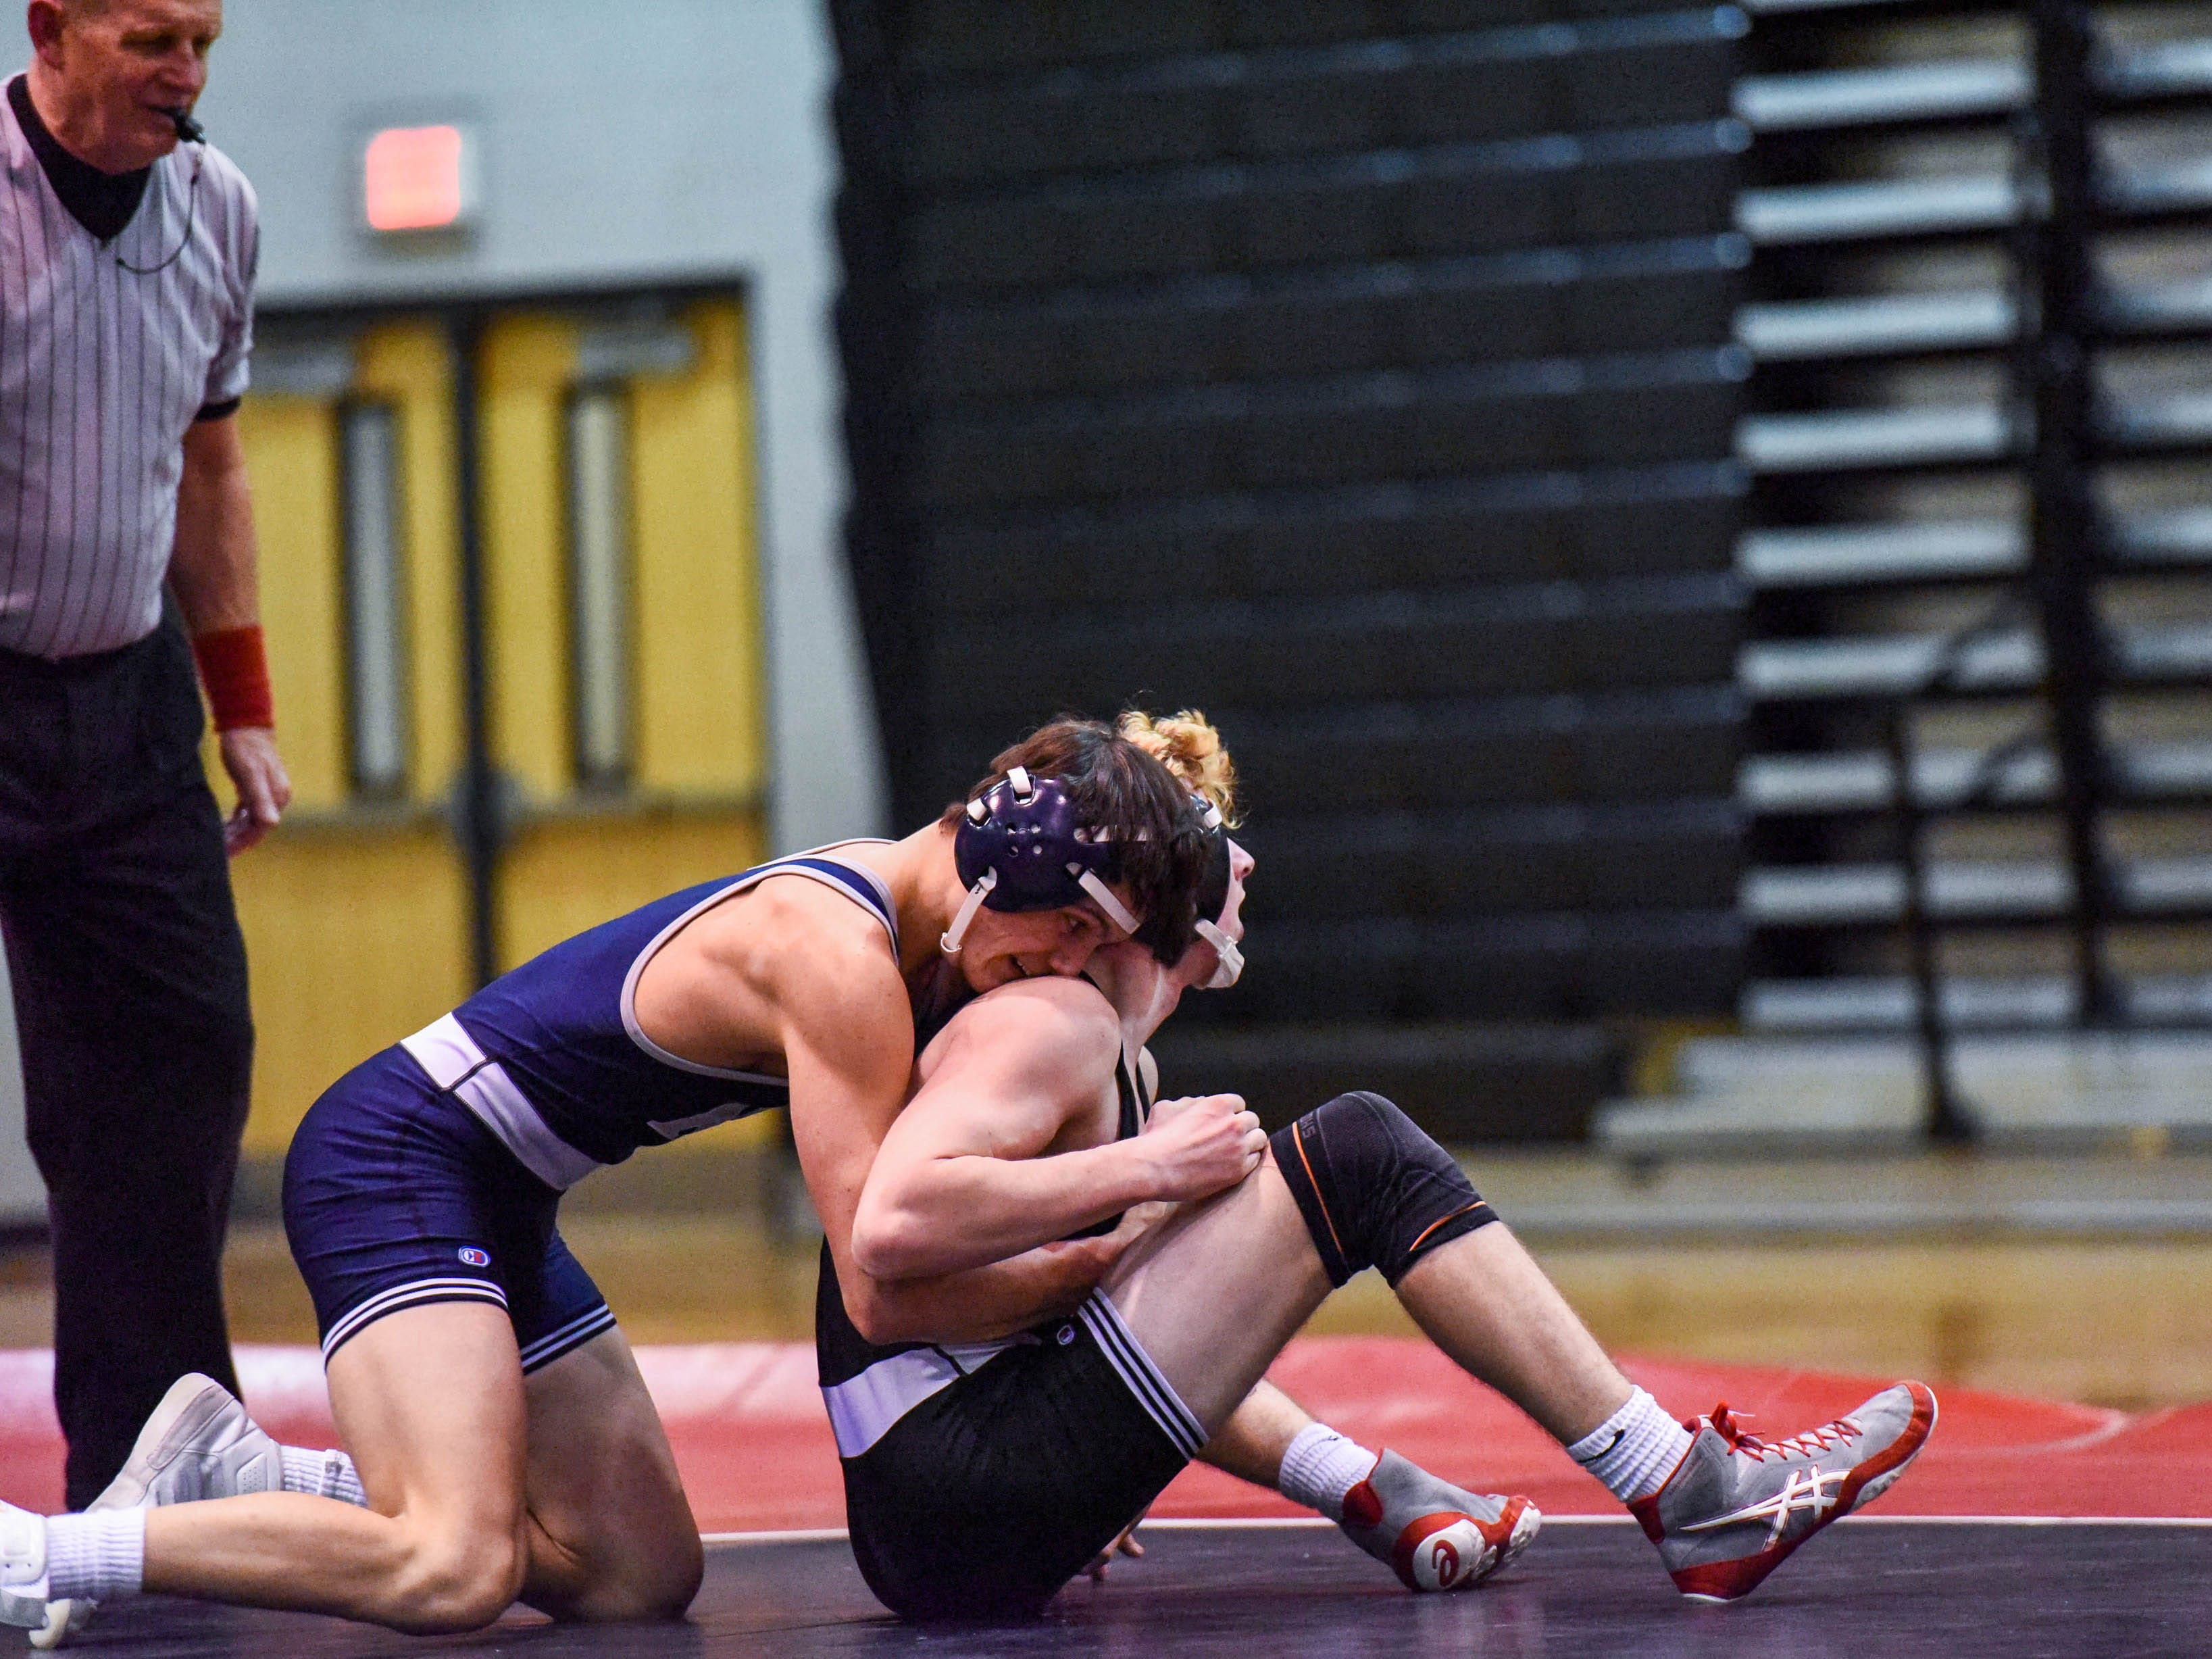 Kent Island's Matt Miller competes in a wrestling match against Bennett's Jeremy Cope at Bennett High on Wednesday, Jan 9, 2018.